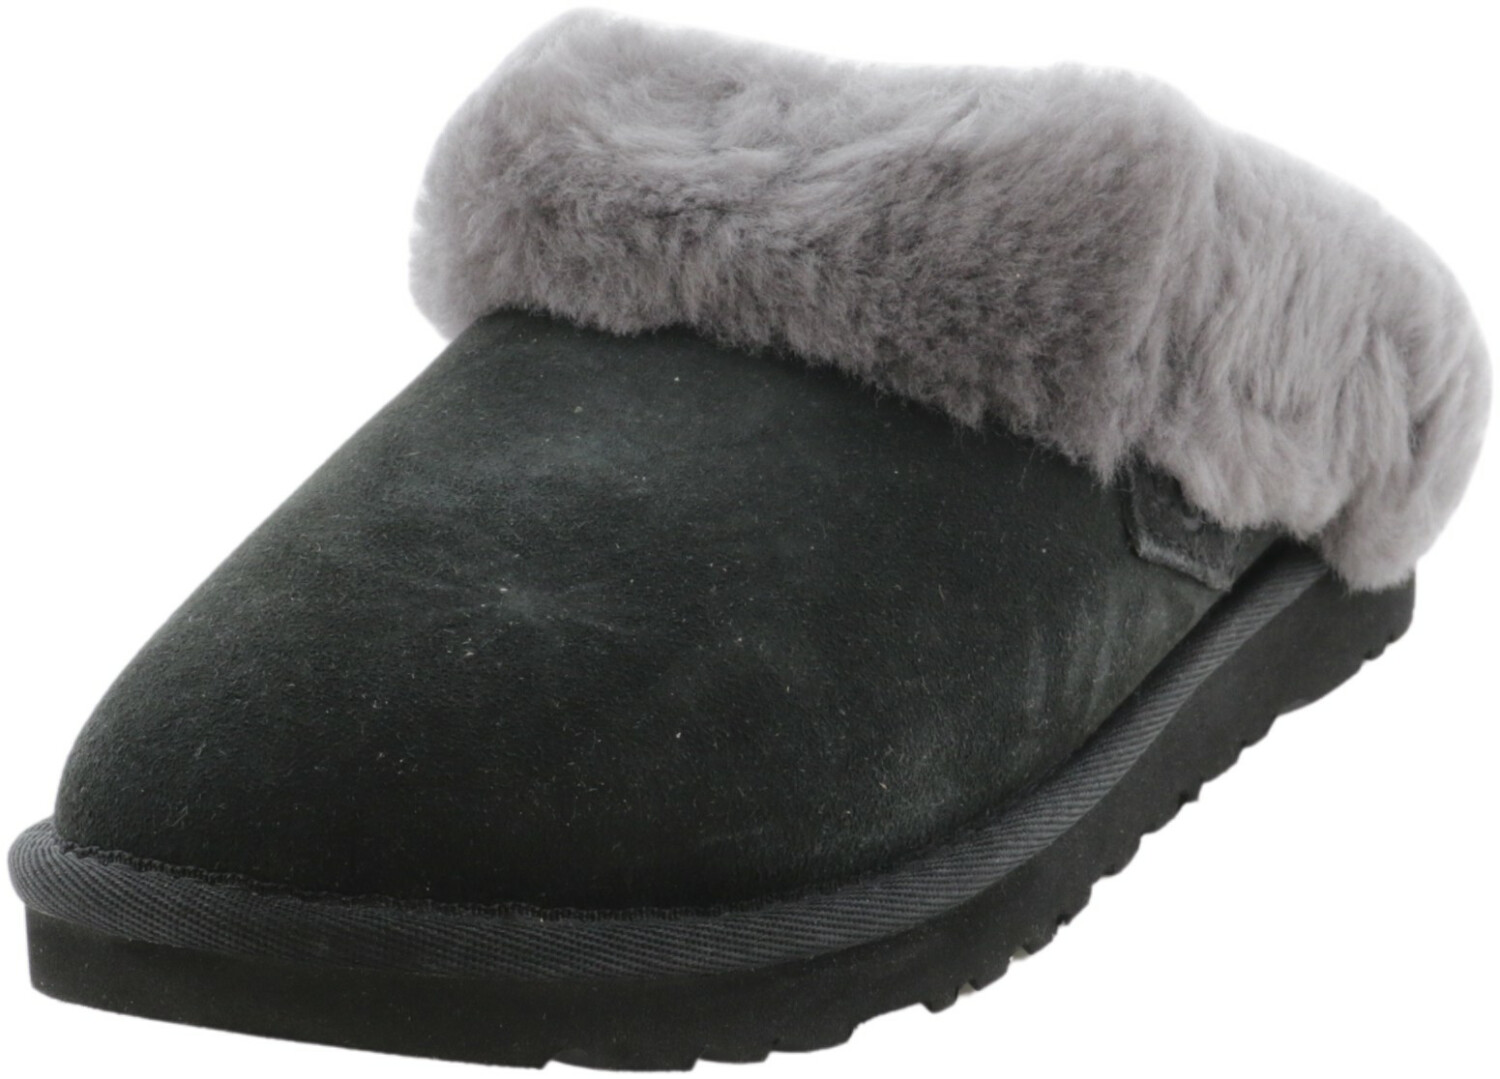 Ugg Women's Cluggette Black Sheepskin Slipper - 5M